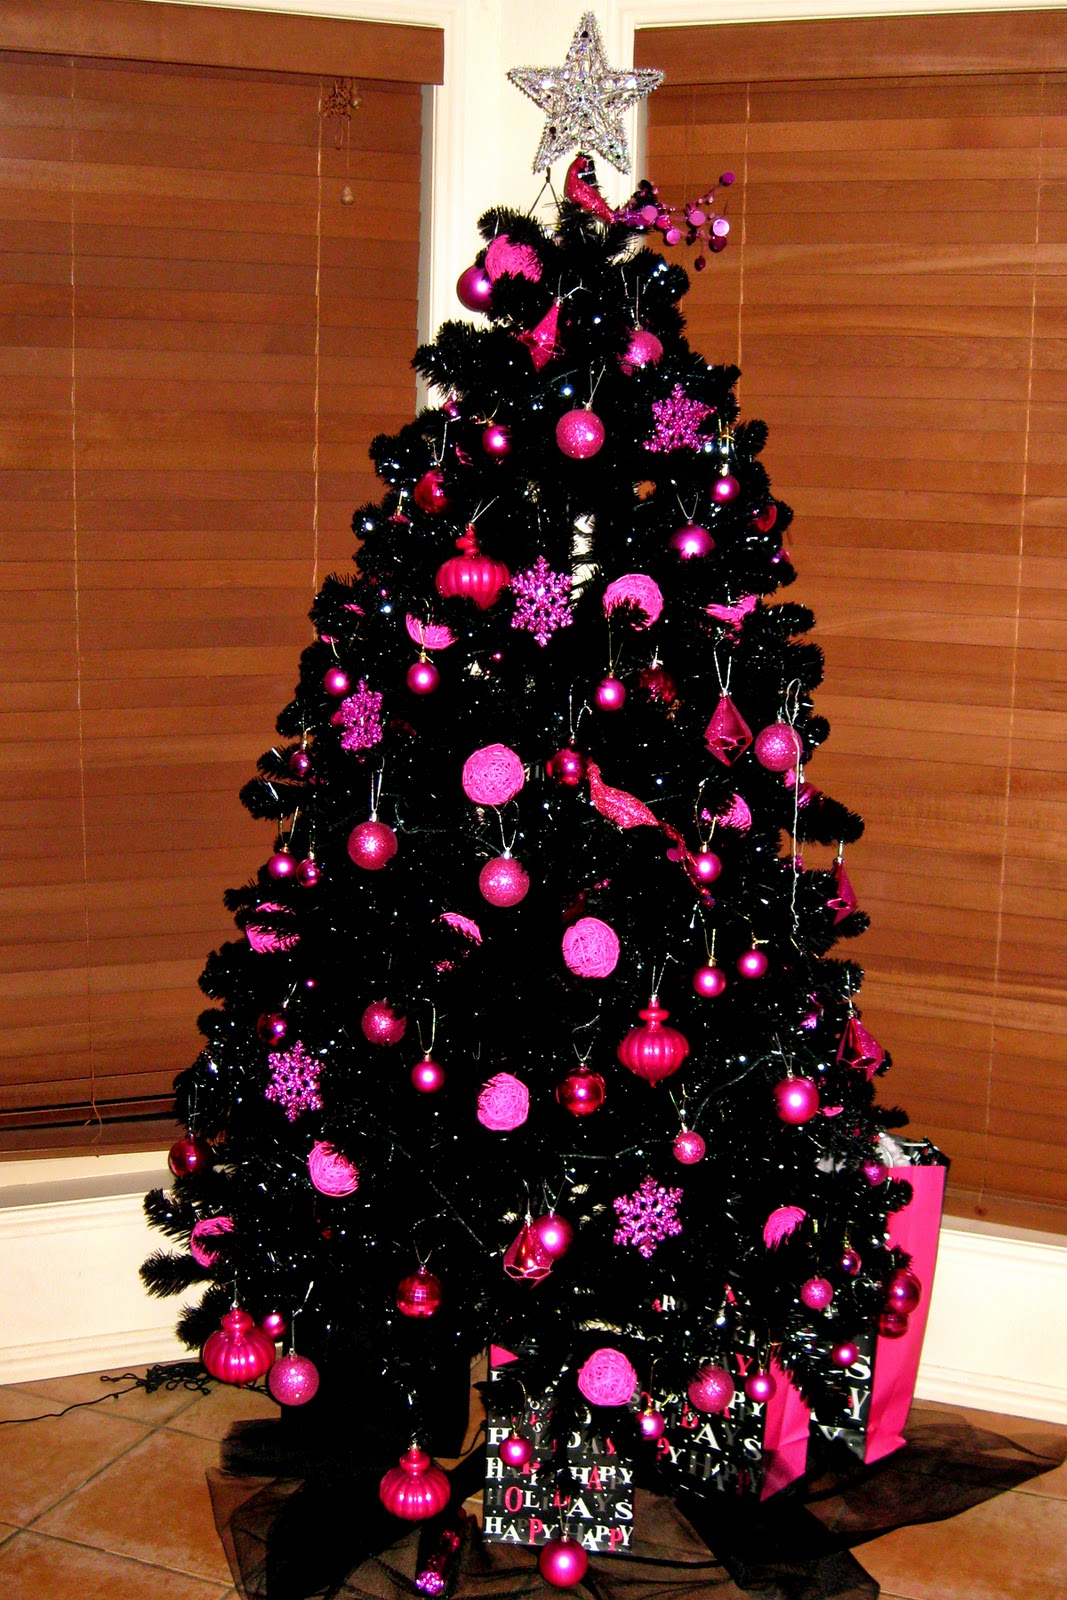 Black Christmas Tree Decorated In Hot Pink Ornaments